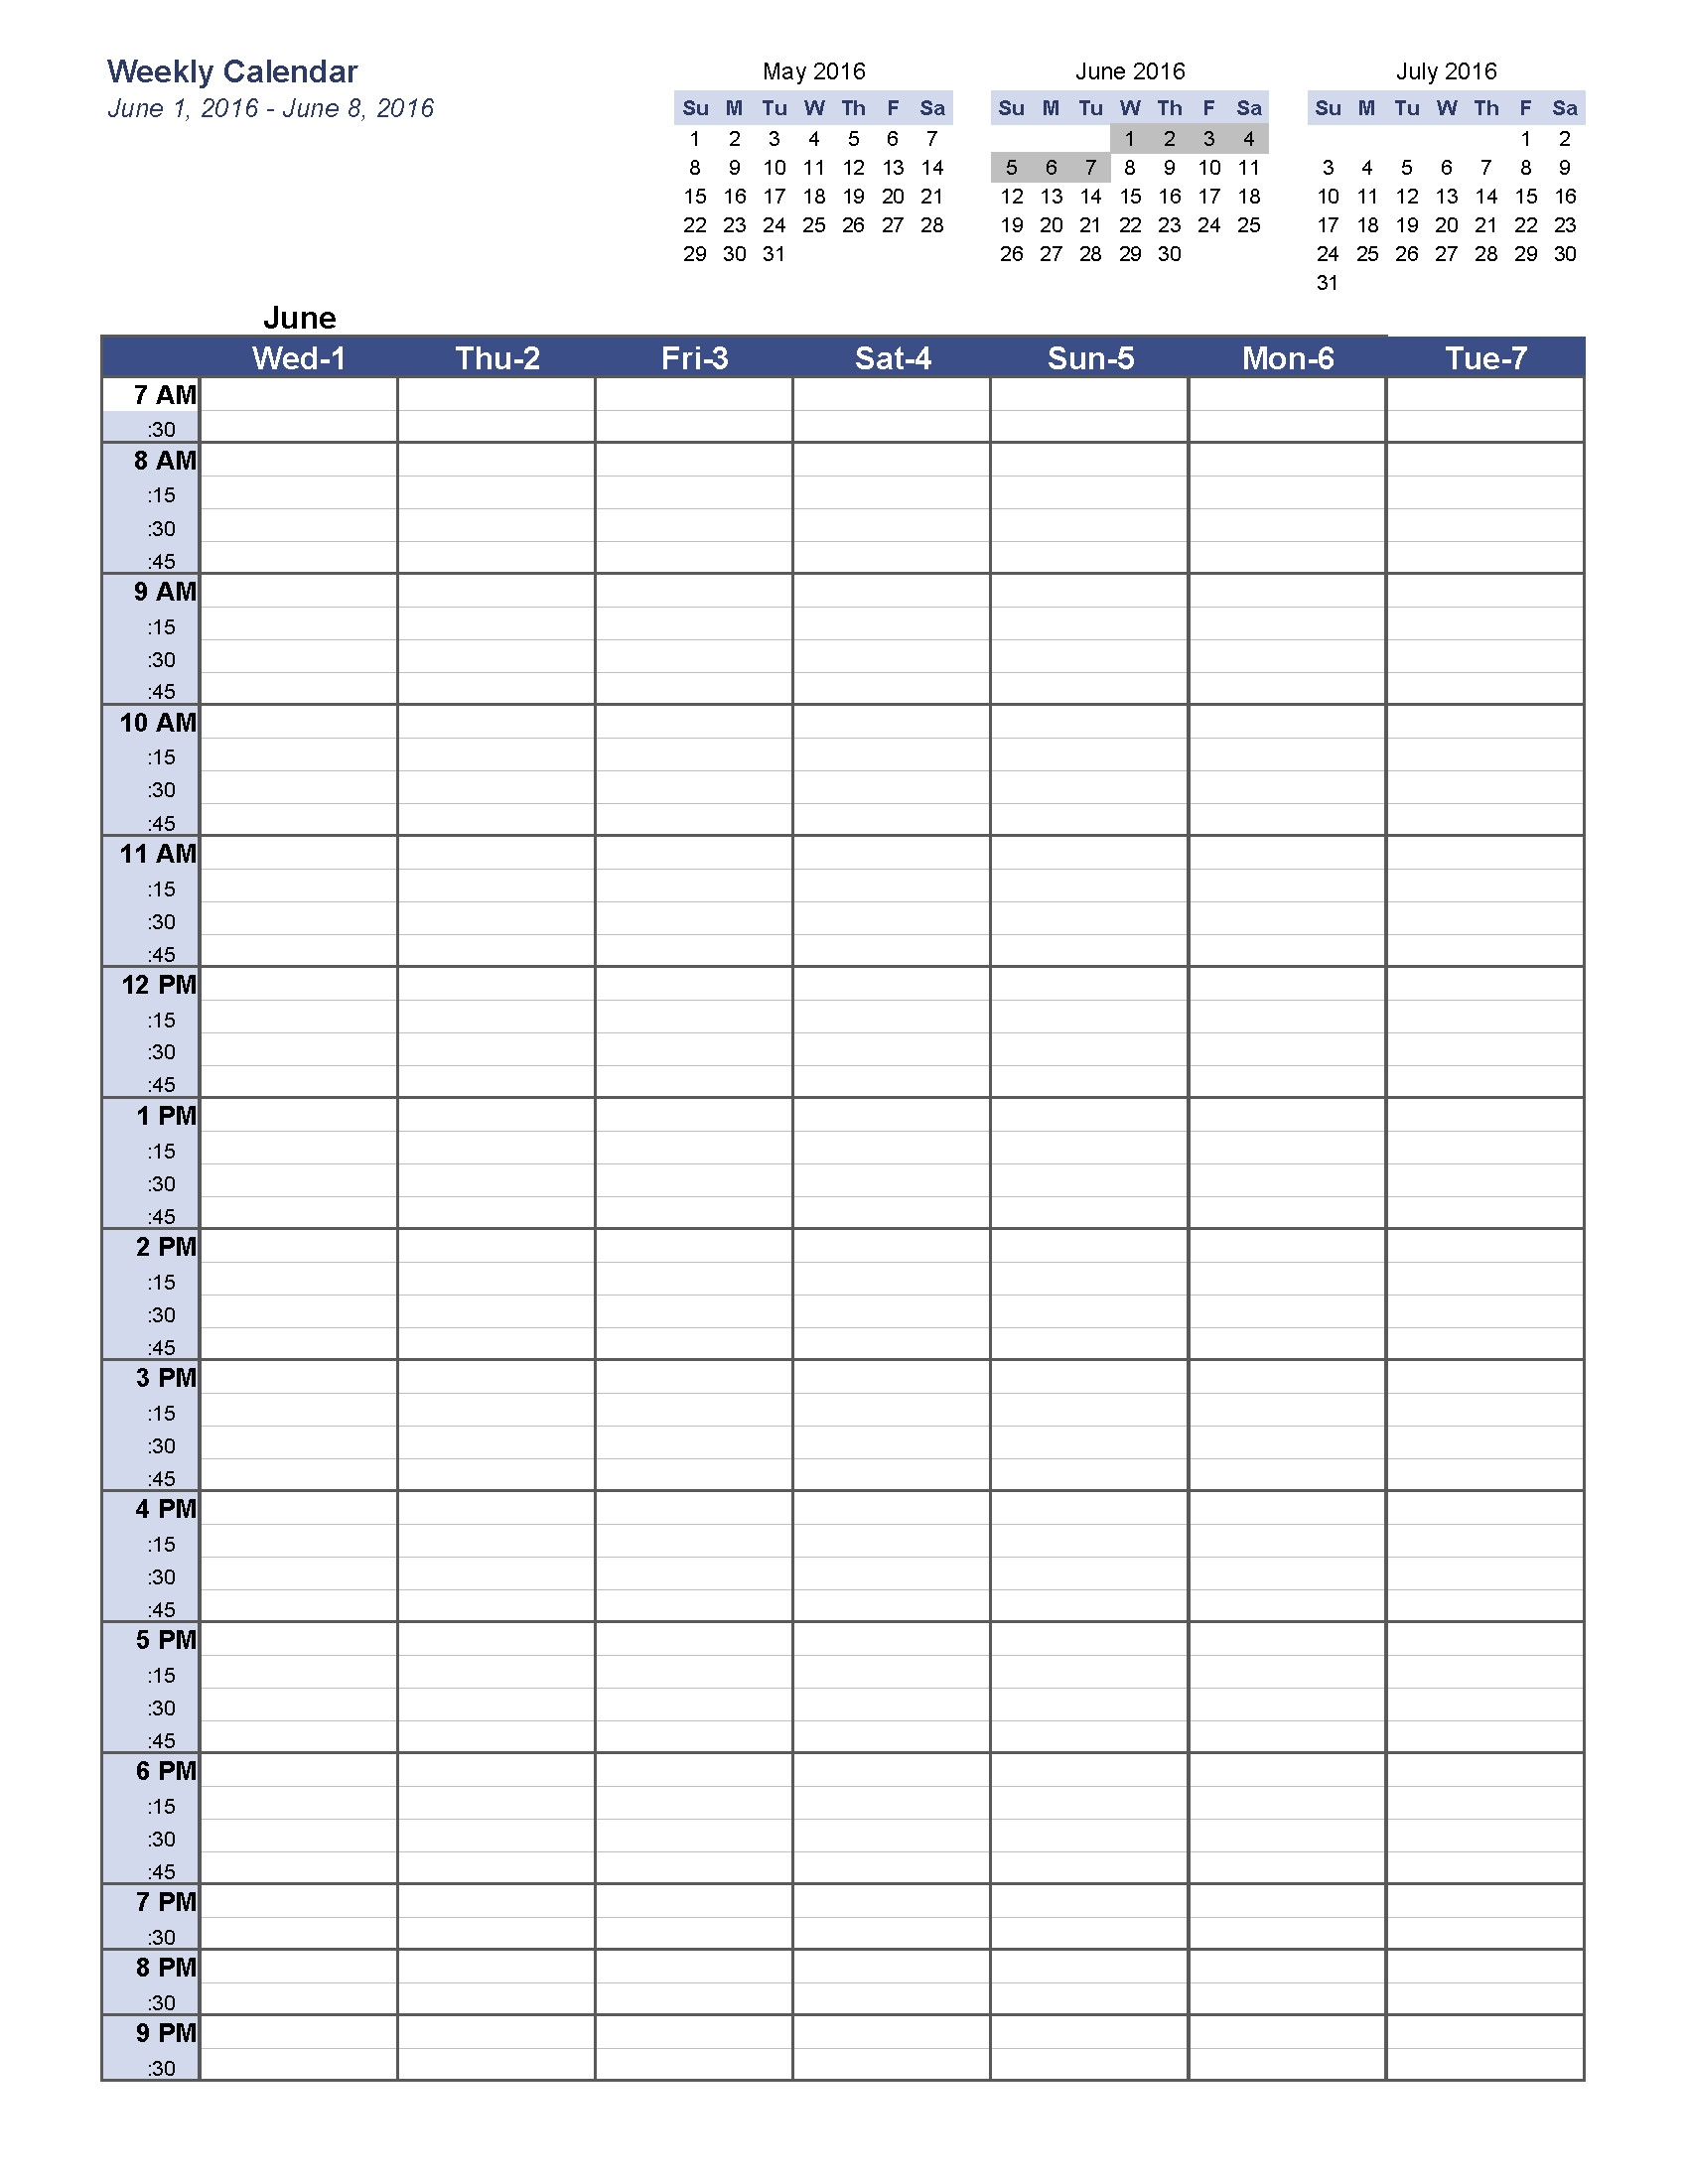 Weekly Planner Template Printable Free Pages Fine Blank Calendar  Weekly Planner Printable 5 Am Start